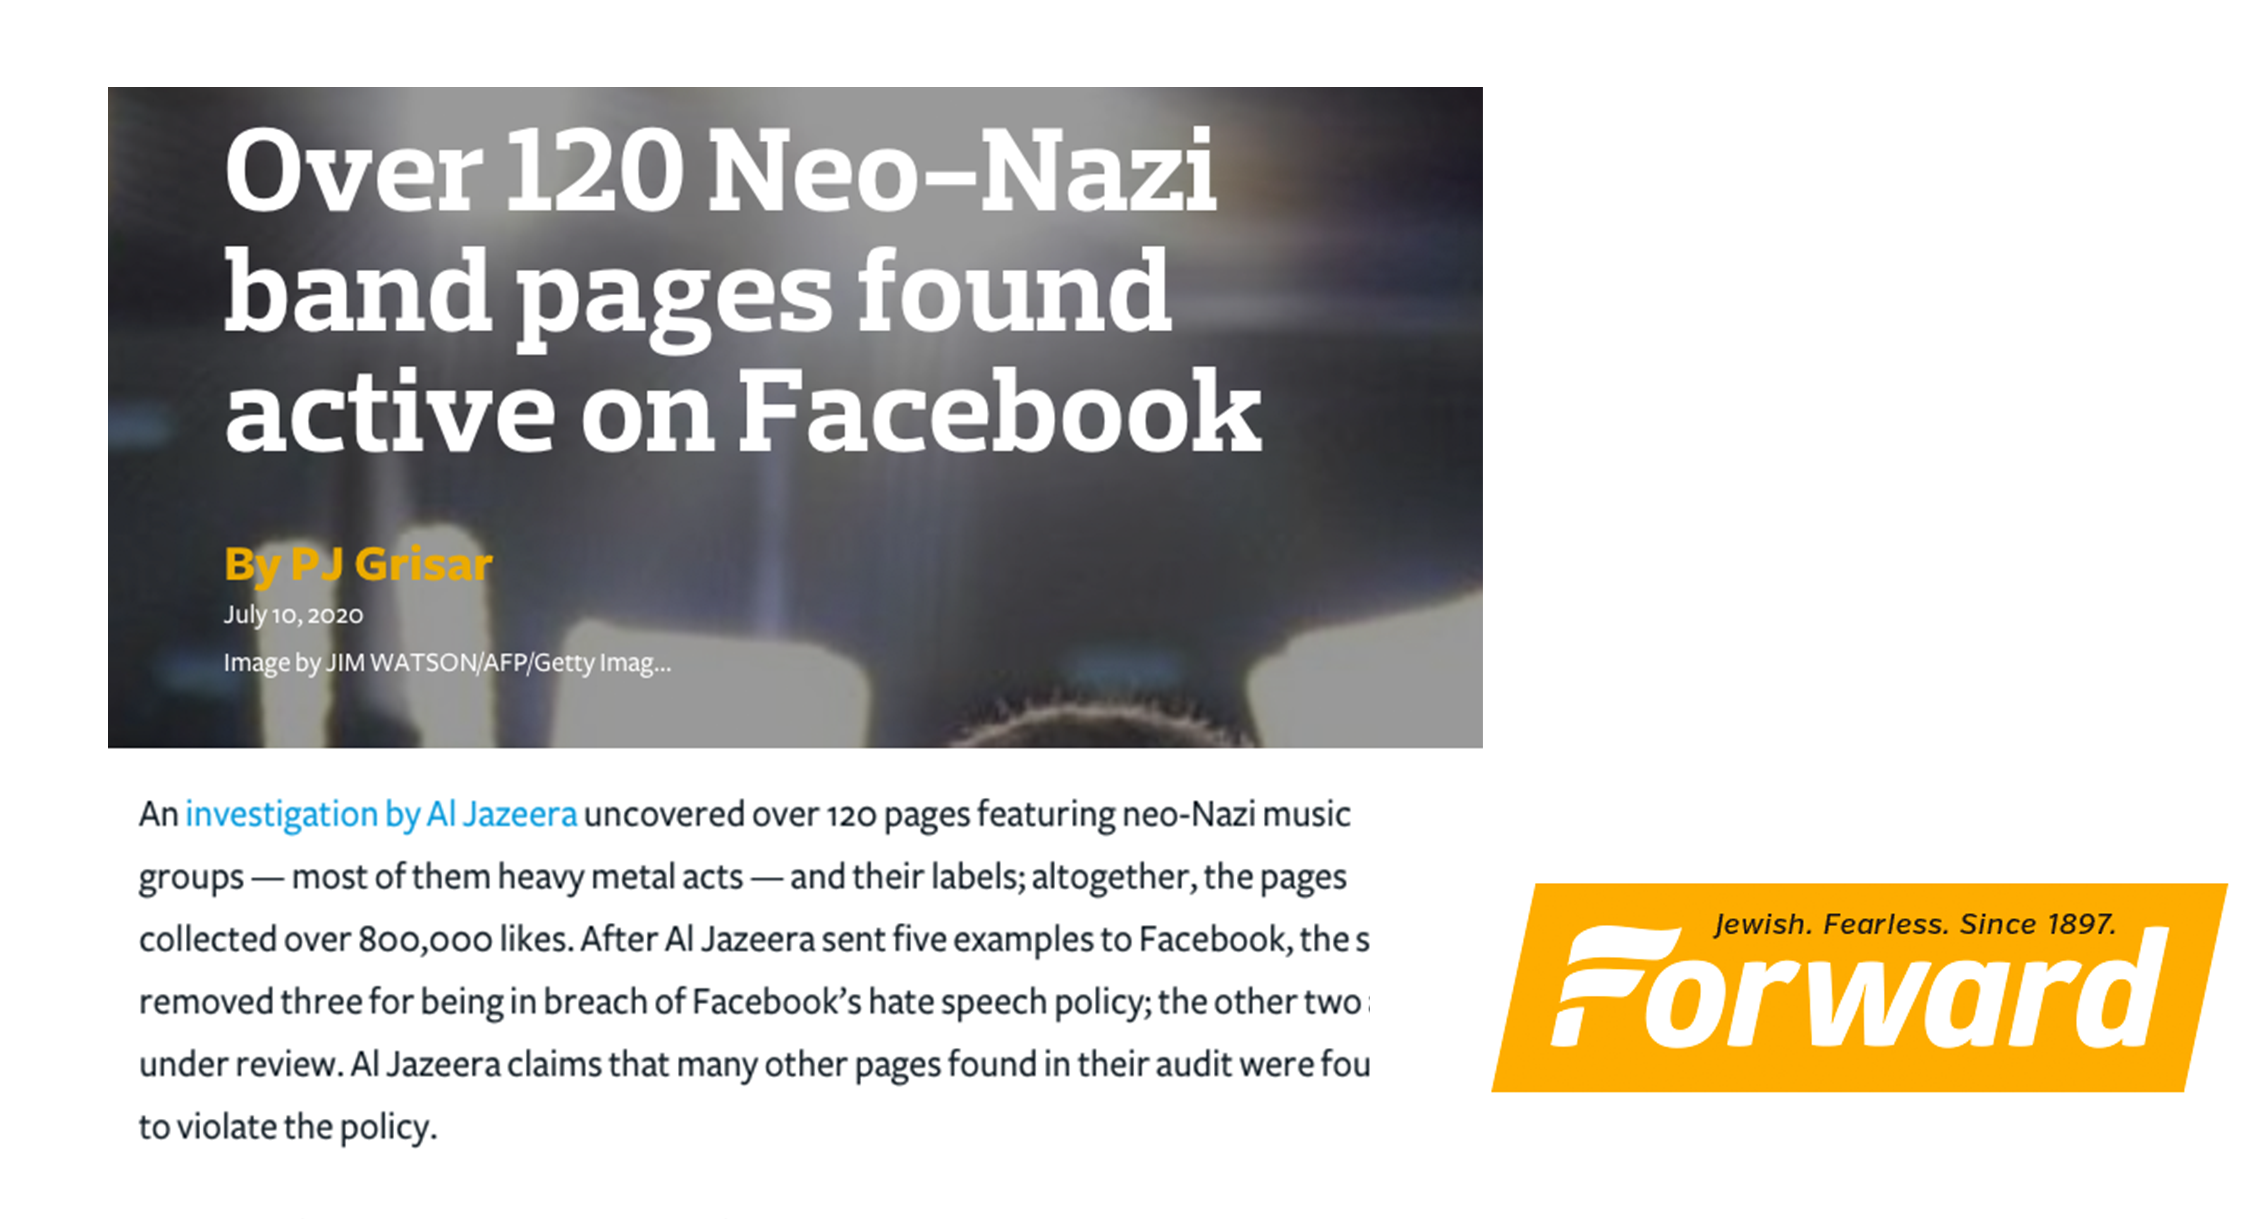 Over 120 Neo-Nazi band pages found active on Facebook